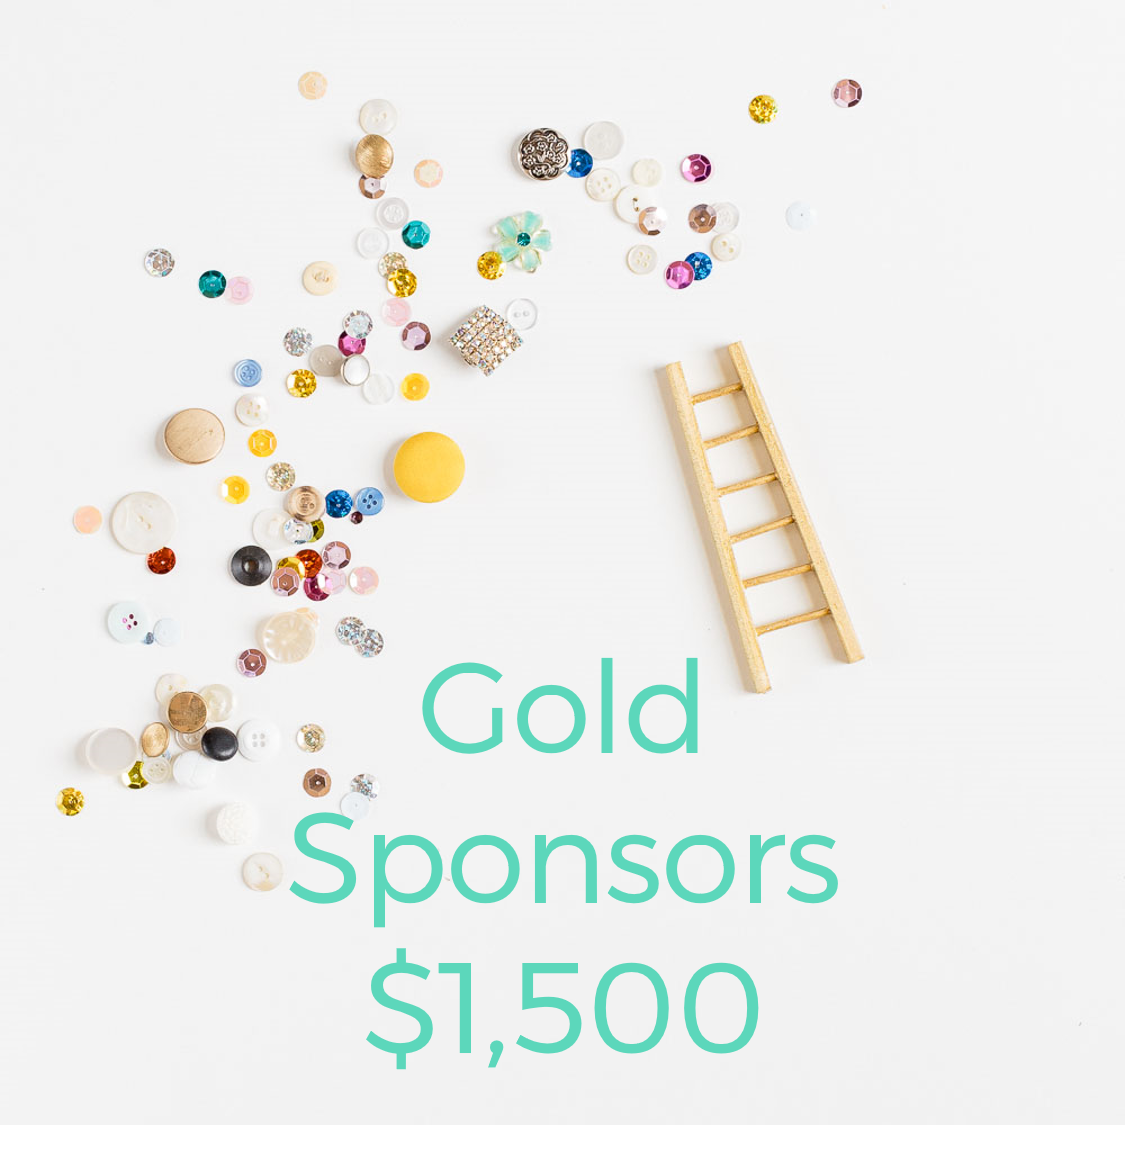 """GOLD  SPONSORS     You provide:     $1,500    We provide you:    - Shout outs on our Instagram and Facebook to our 3,000+ followers  - Placement on our event page on our website  - FULL page spot in our Retreat Guidebook  - Your logo on our event t-shirt  - Admission for two to attend our event business training sessions   - Two concert tickets to join us to see four-time Grammy-award winner,Pat Benata  r , perform at the gorgeous Tuacahn Amphitheatre. She brought the world """"Love is a Battlefield"""" and """"Hit Me with Your Best Shot."""" ( See concert details here .)"""